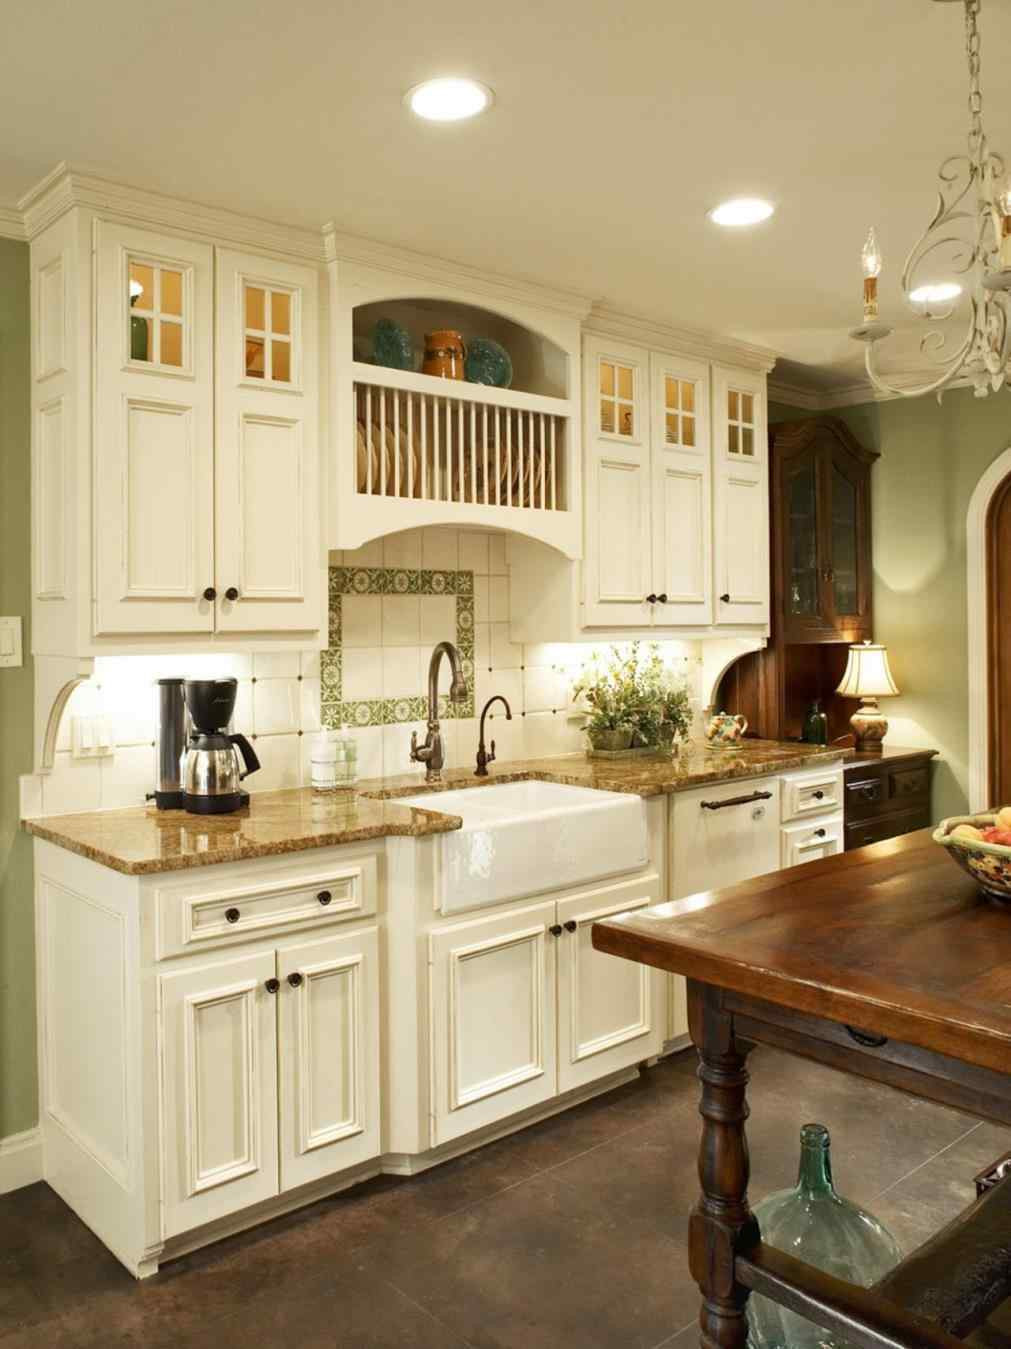 Best ideas about Joanna Gaines Kitchen Ideas . Save or Pin Fixer Upper Kitchen Decorating Ideas Now.